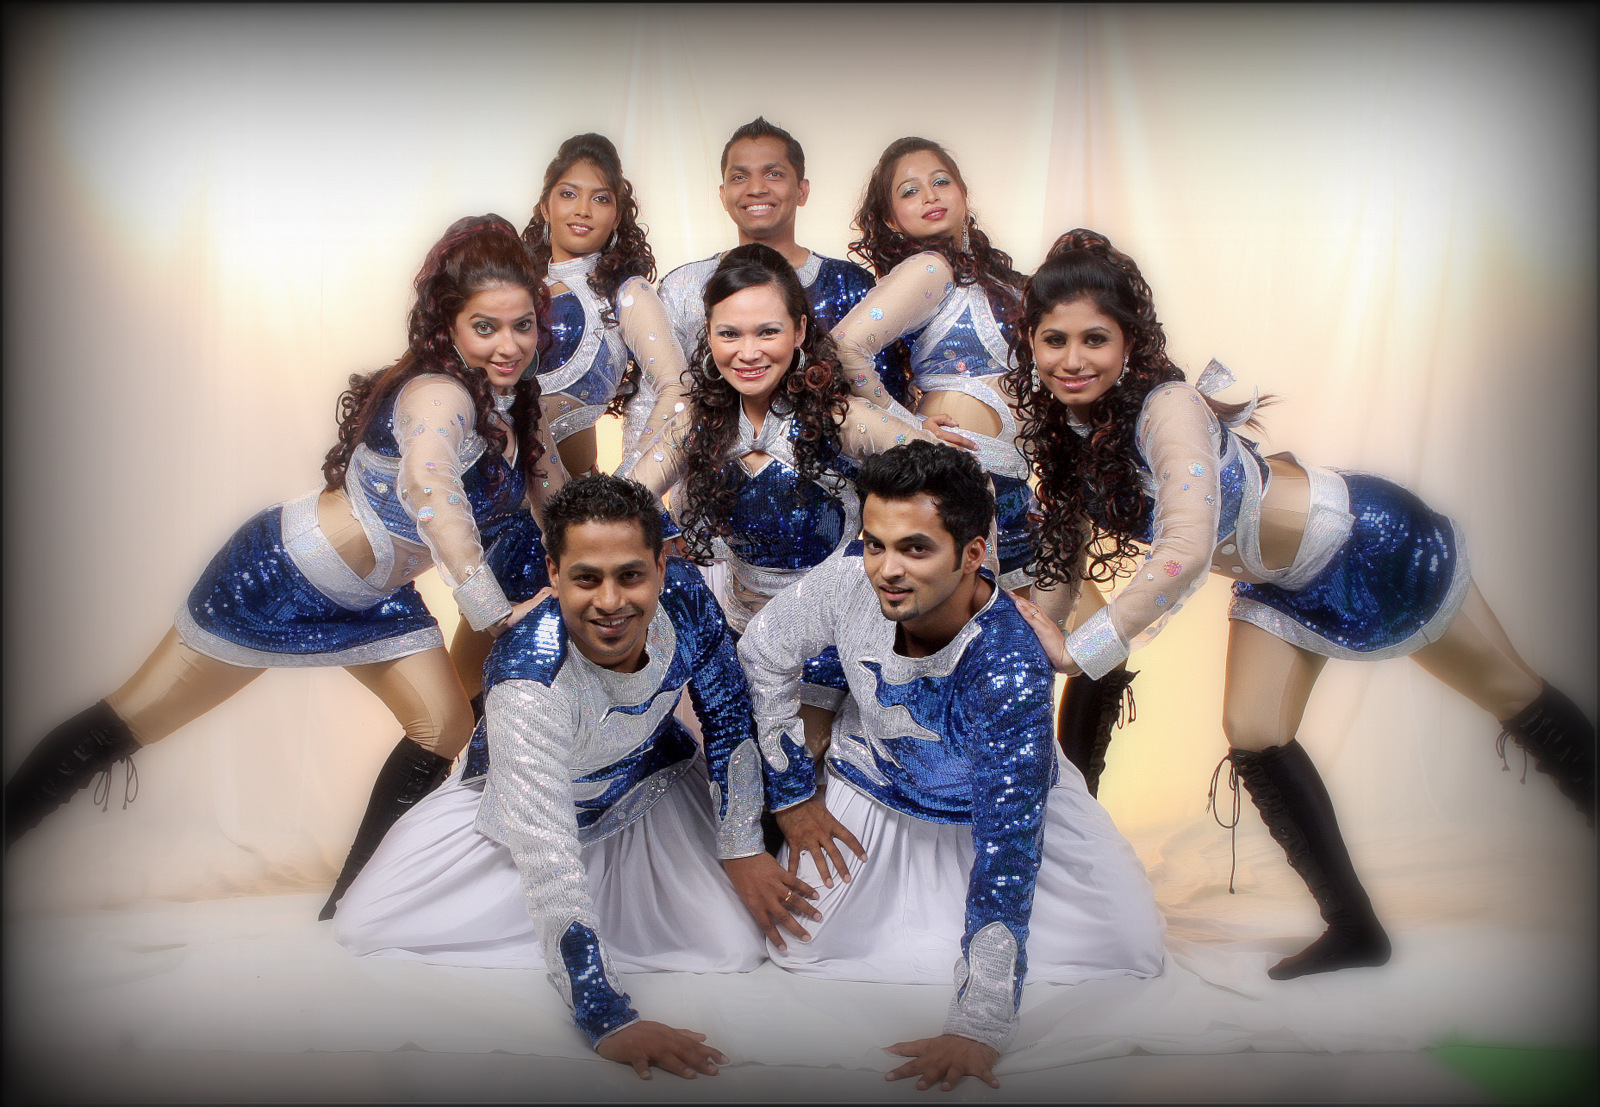 Dance Group for music videos in dubai